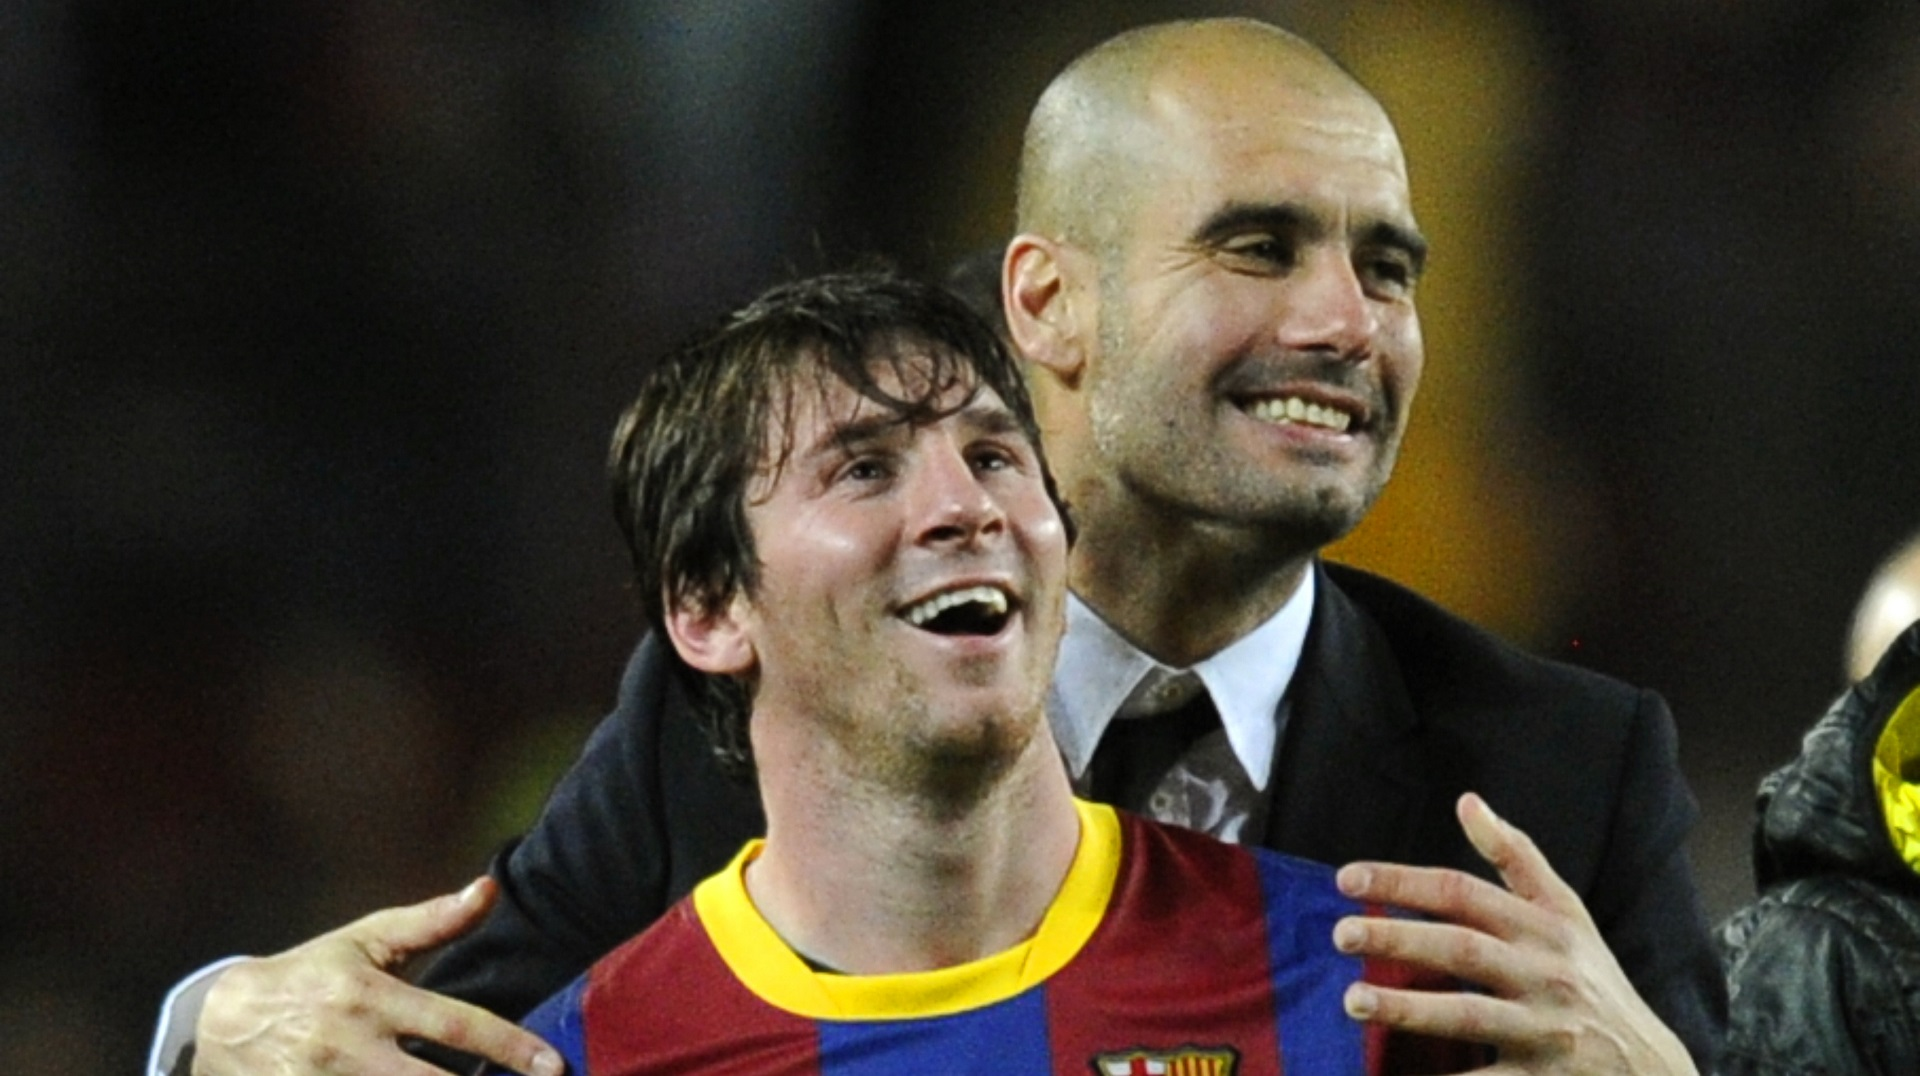 Guardiola ignoring Messi to Man City transfer links & hopes he stays at Barcelona